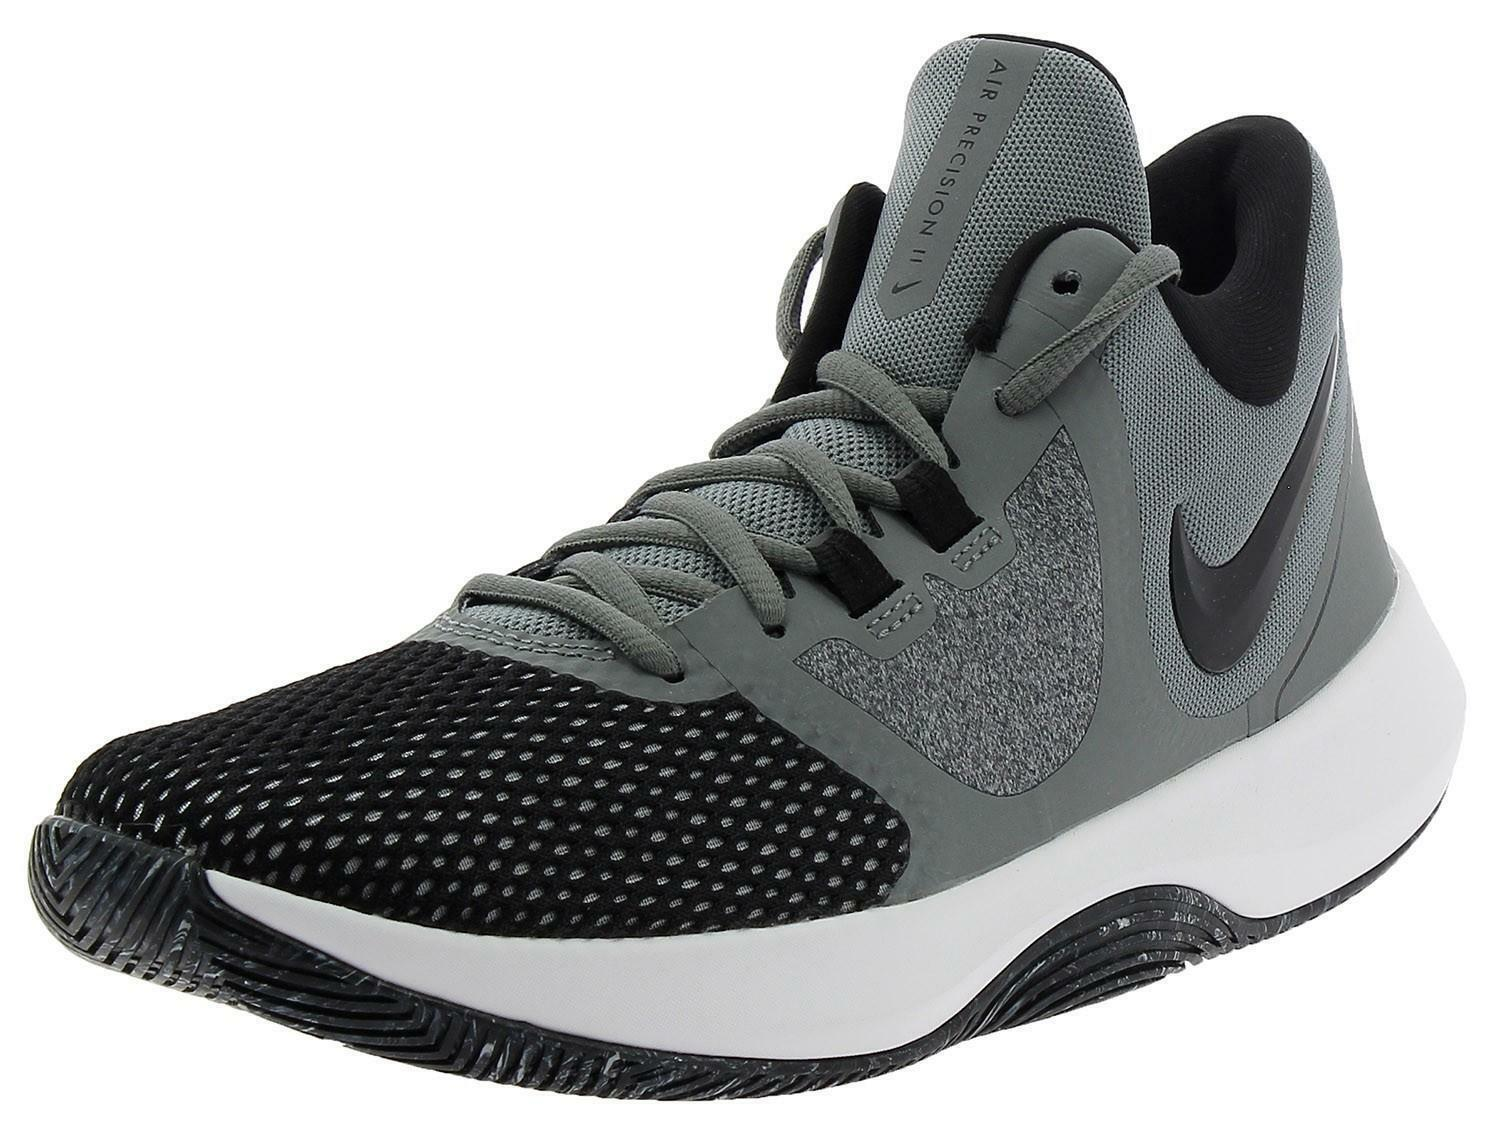 Details about NIKE Air Precision II Men's Basketball Shoes Grey AA7069011